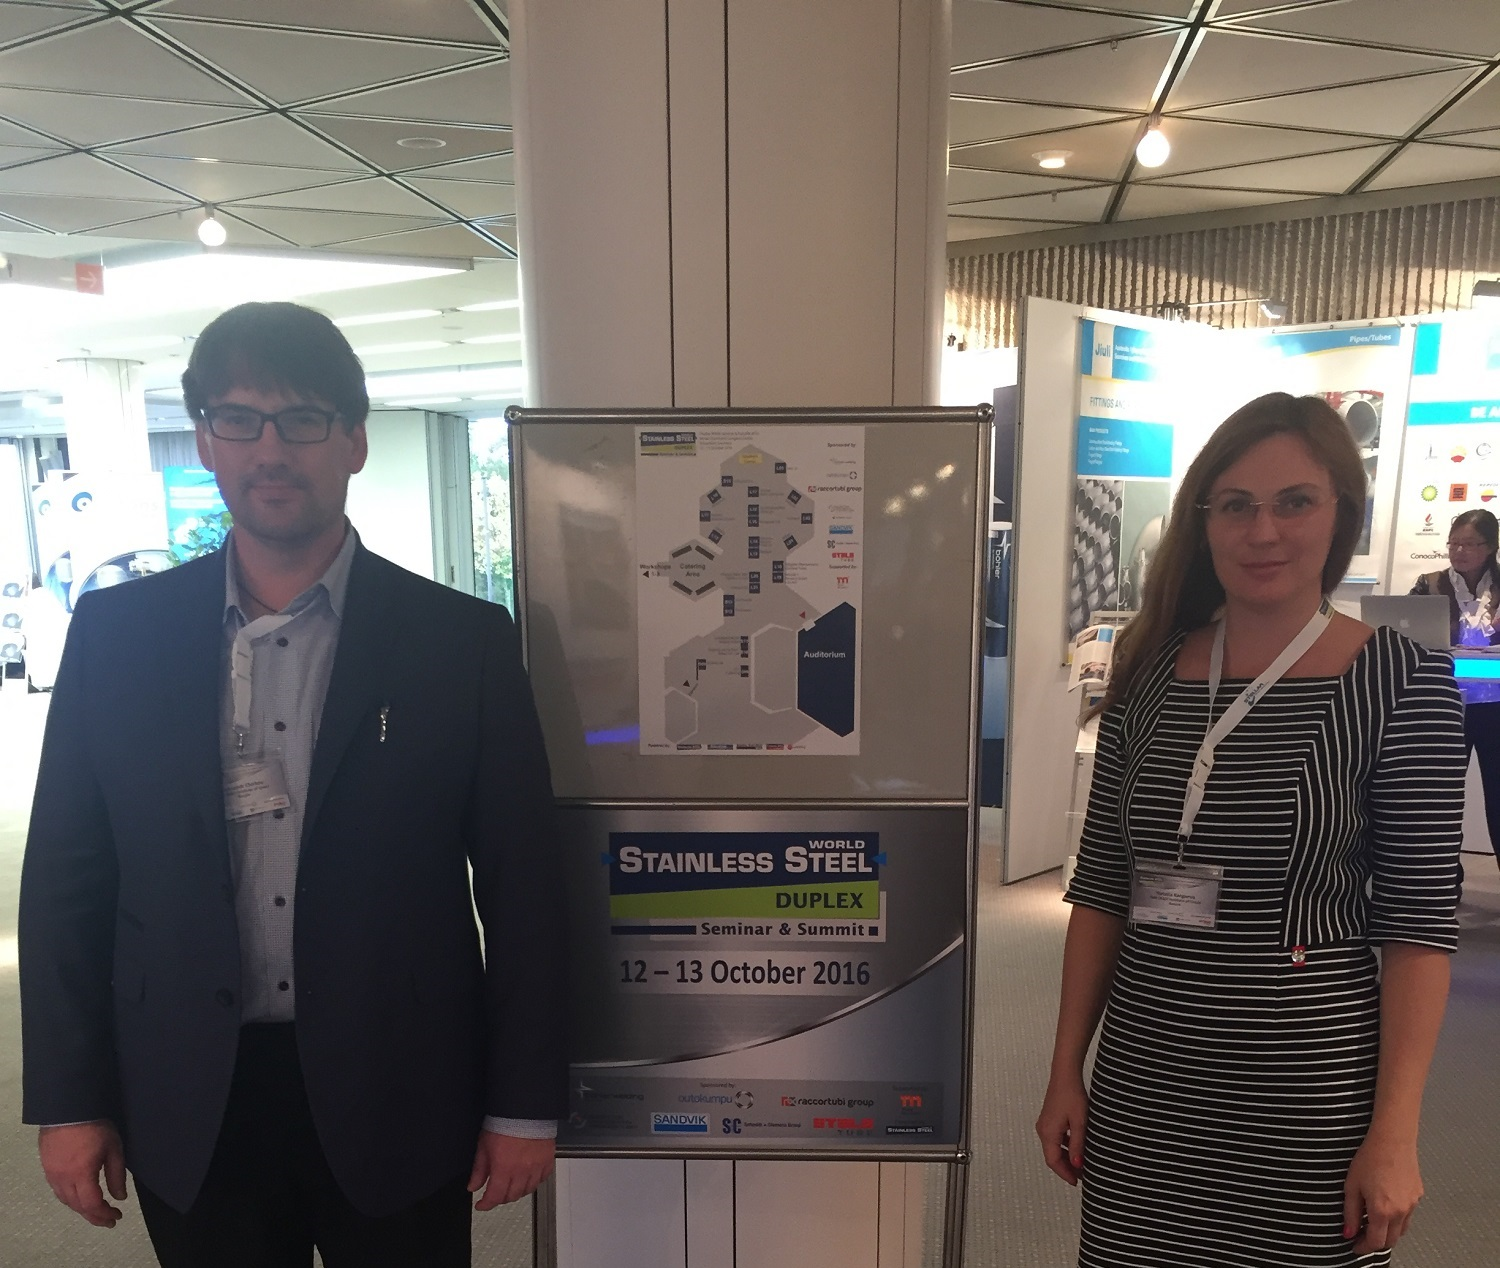 NIIK specialists participated in Duplex Stainless Steel conference taken place in Düsseldorf, Germany on 12th and 13th October.